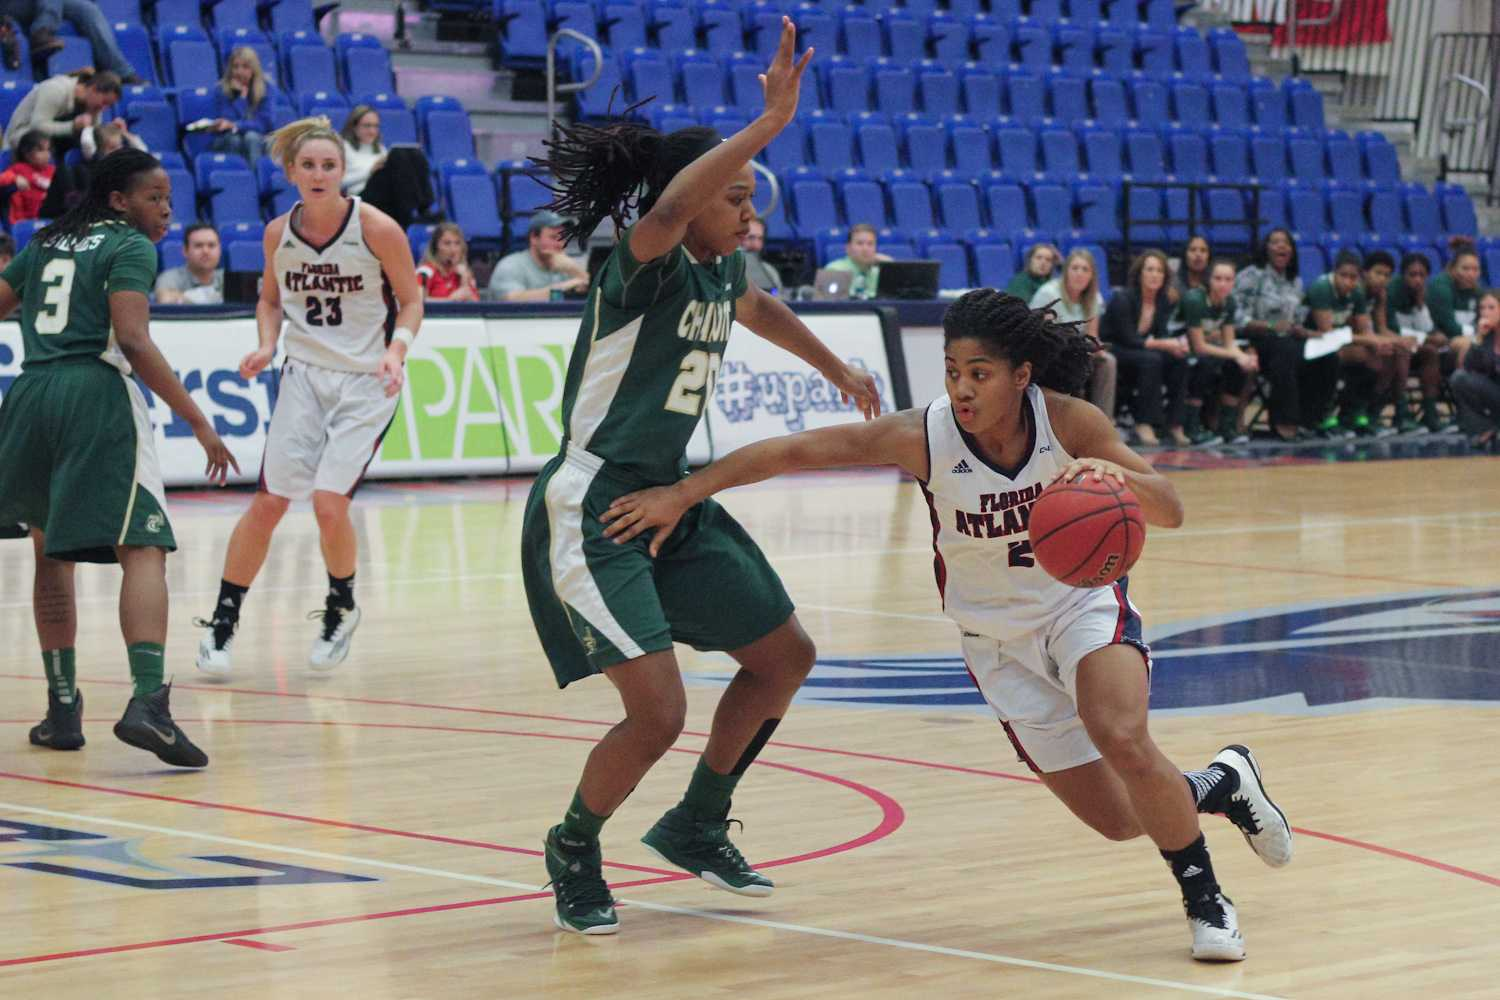 FAU guard Shaneese Bailey (2) drives toward the basket around Charlotte forward Kira Gordon. Bailey finished with 10 points in a 71-68 win over Charlotte on Jan. 29.